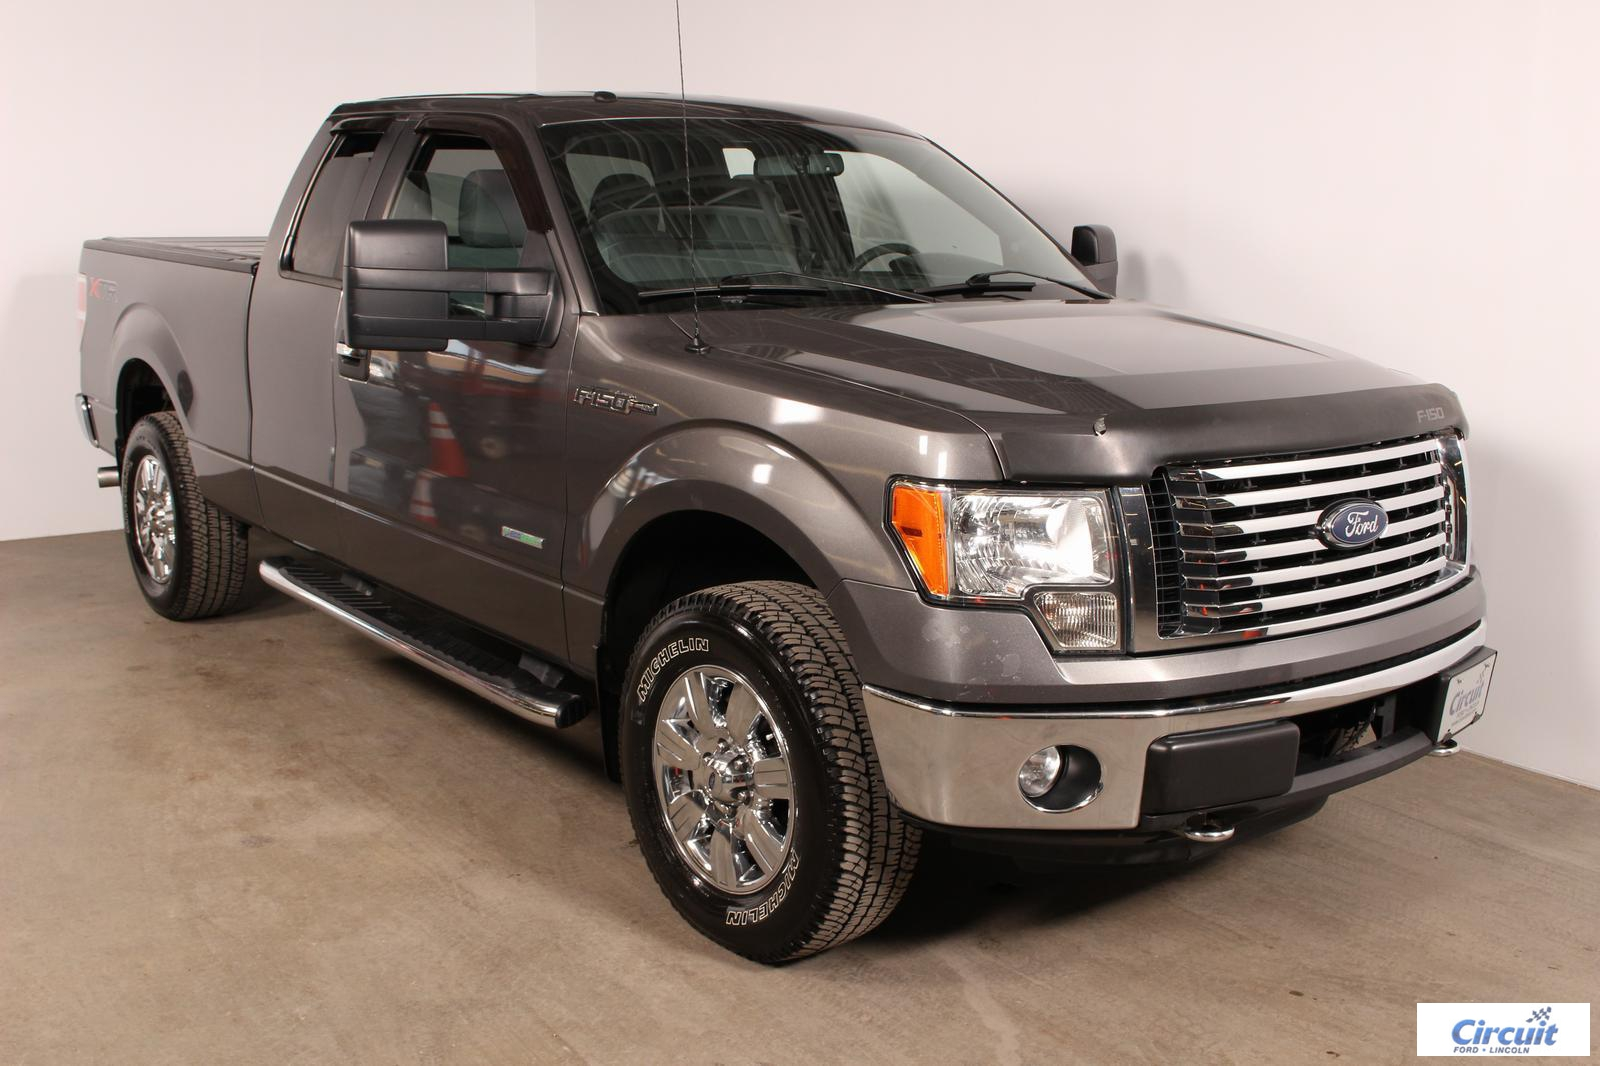 ford f150 2012 used for sale circuit ford lincoln. Black Bedroom Furniture Sets. Home Design Ideas